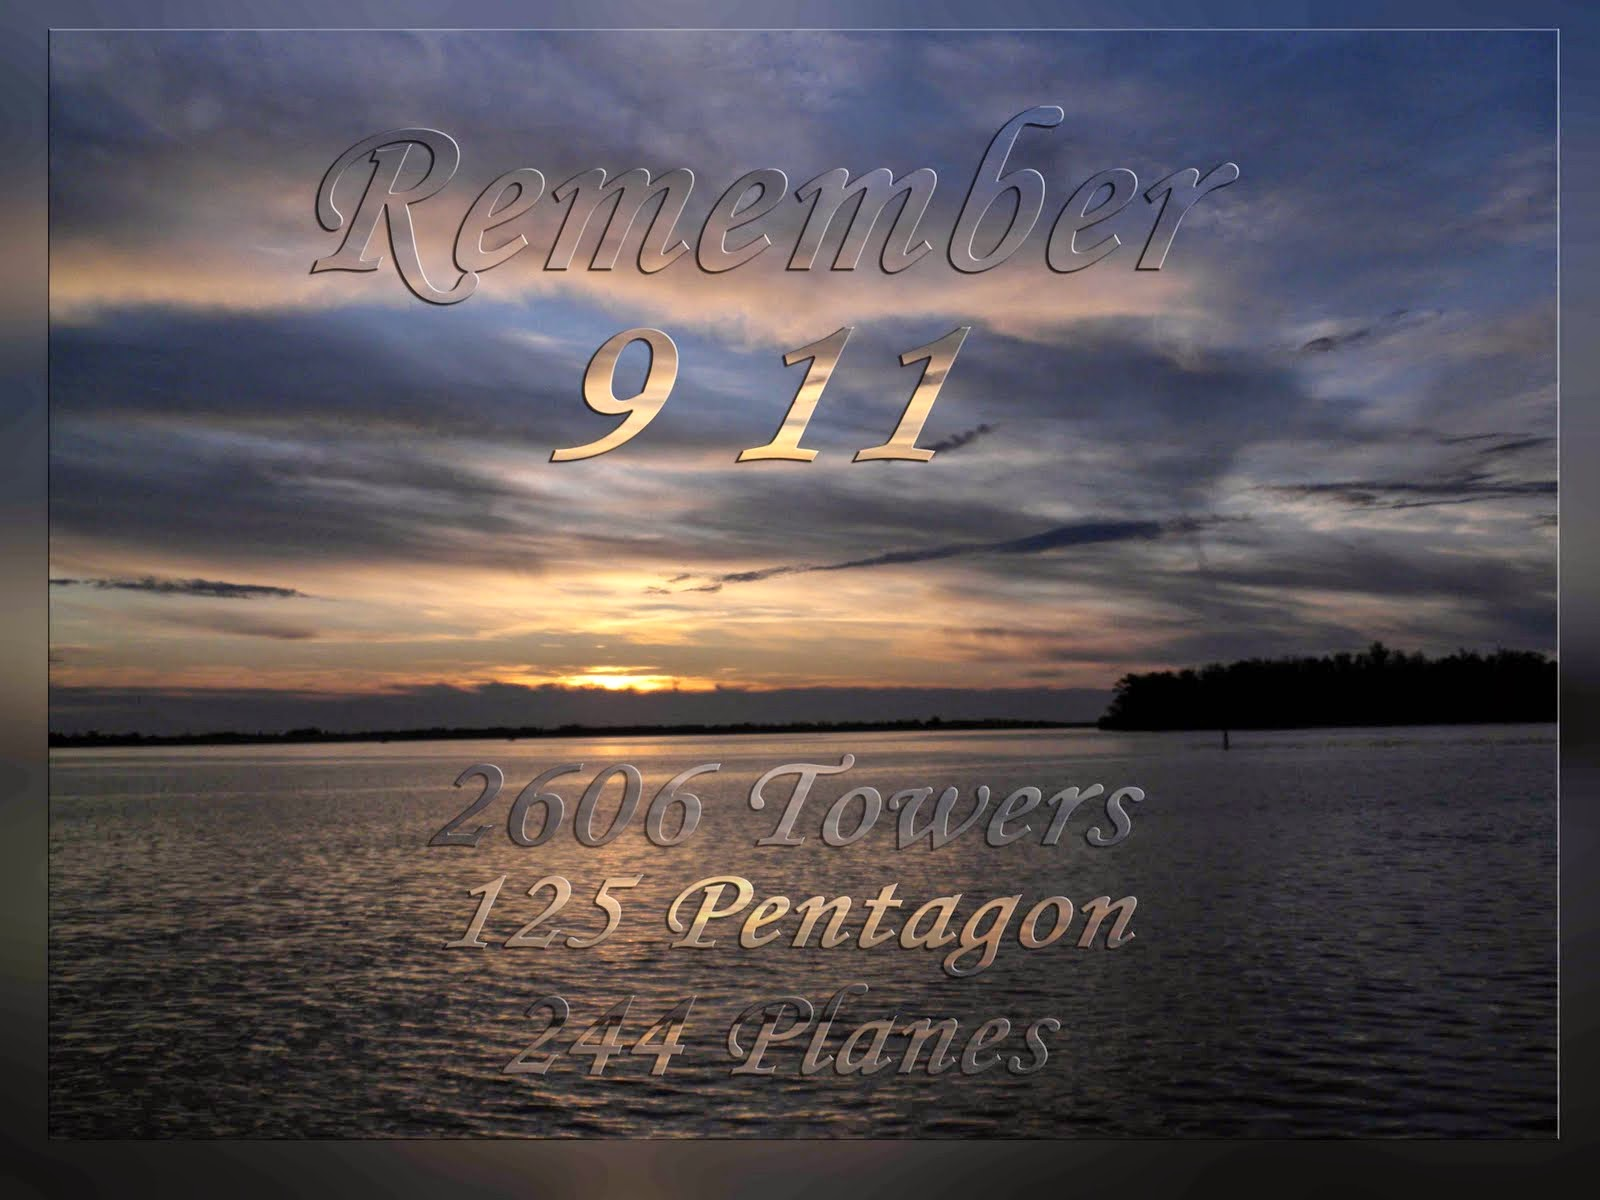 mad snapper today we remember 911